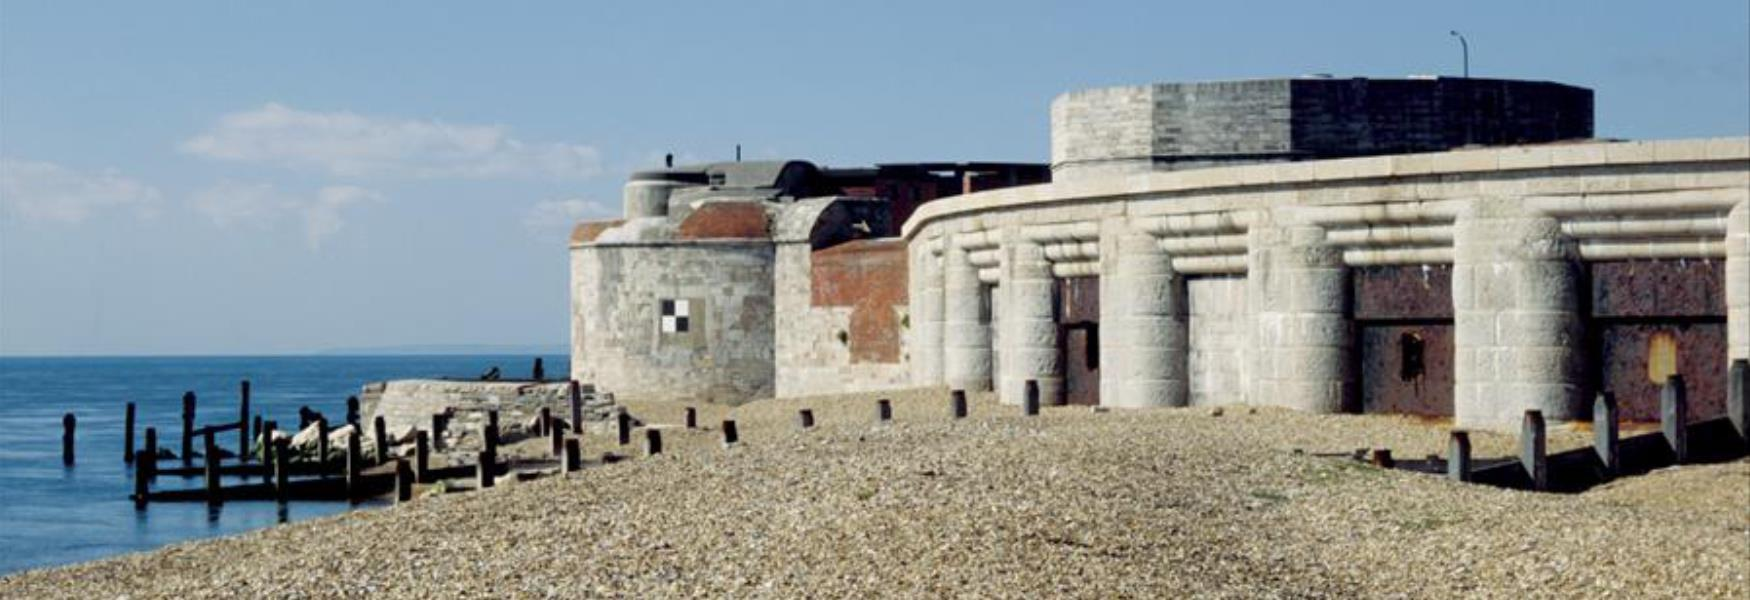 hurst castle museum attraction in milford on sea in the new forest